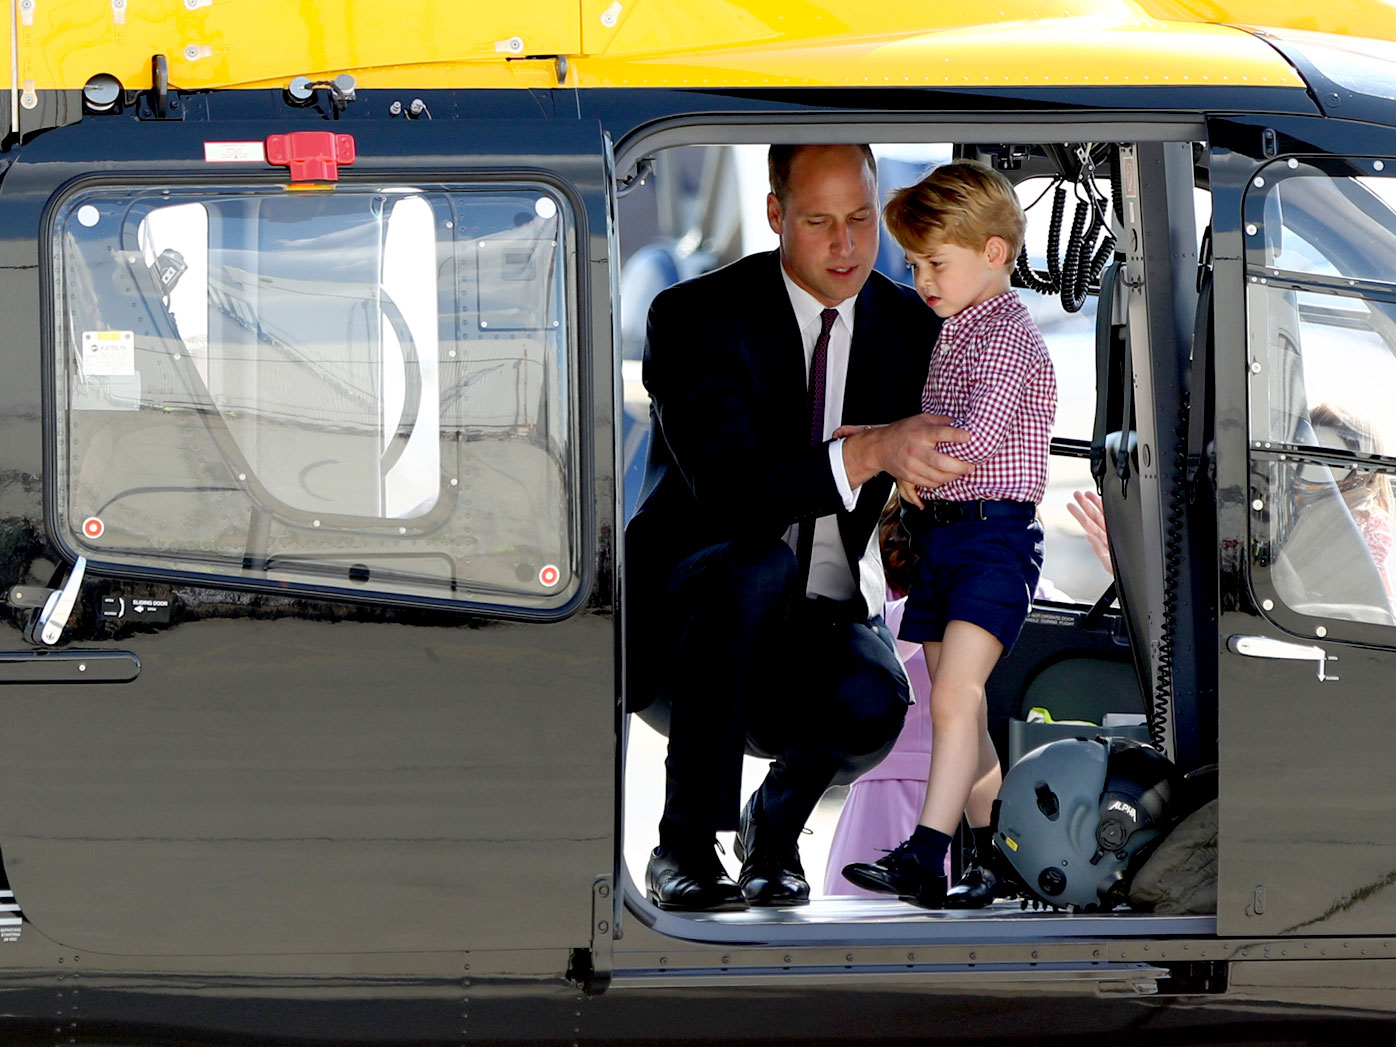 Prince William on his final shift as air ambulance pilot